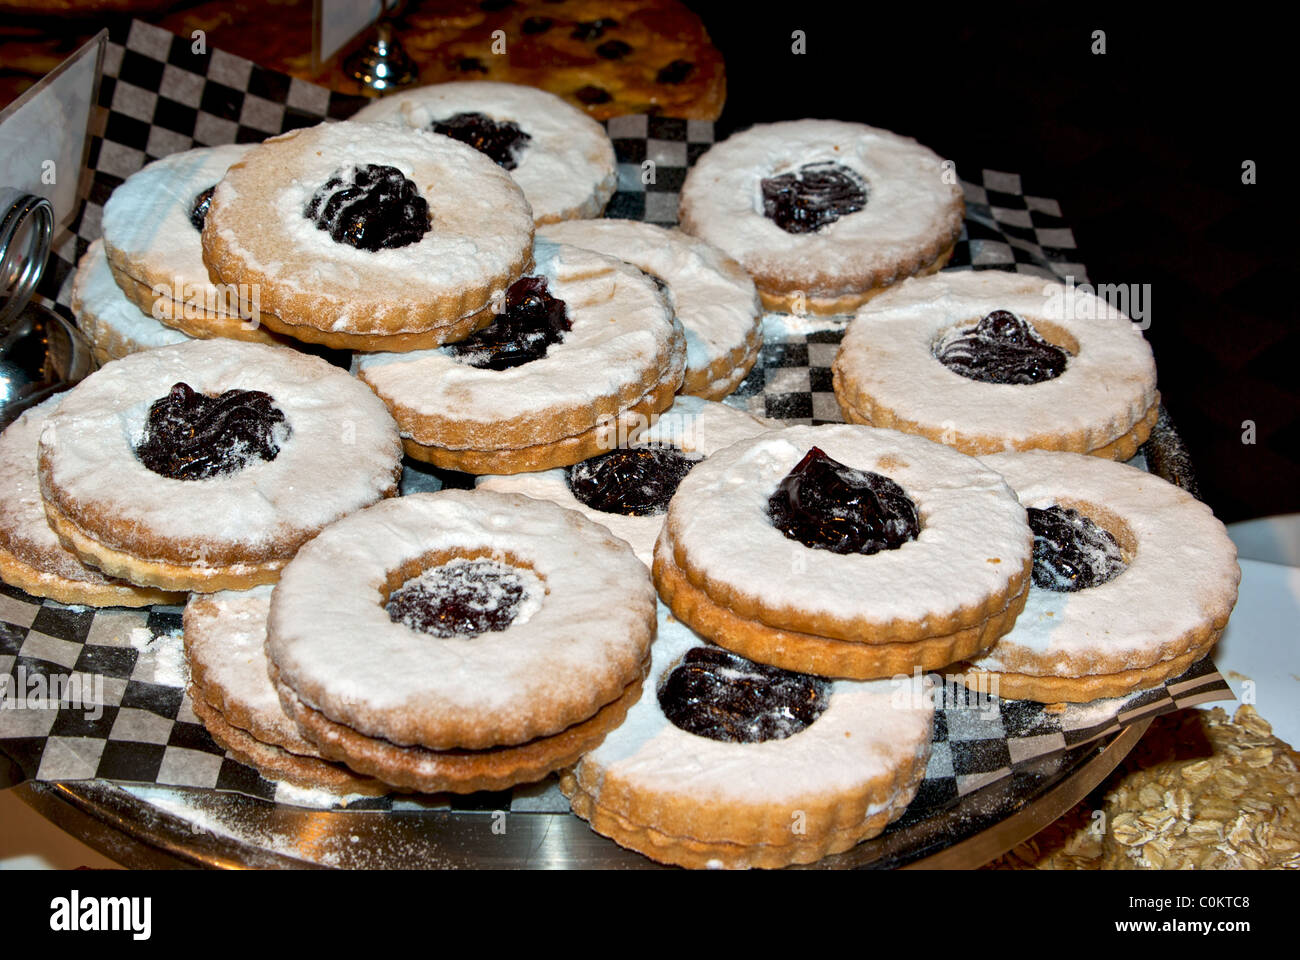 sugar dusted raspberry jam filled cookies piled on platter bakery display Granville Island public market Vancouver - Stock Image